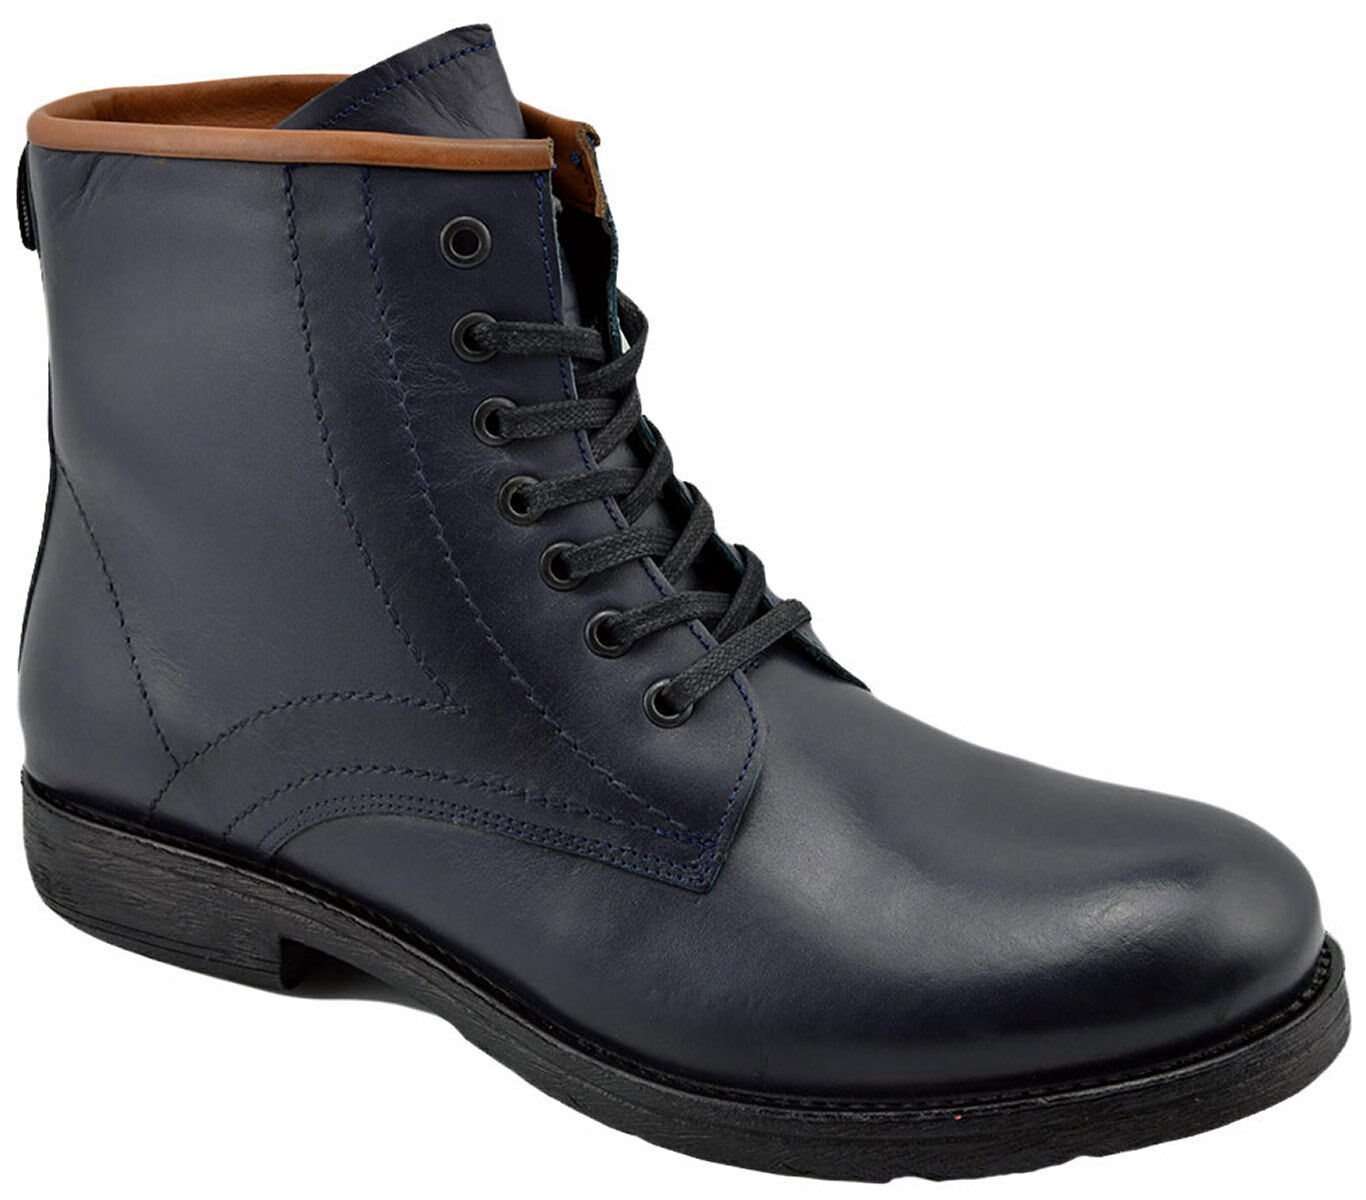 230 OVATTO bluee Calf Leather Ankle Boots Men shoes NEW COLLECTION